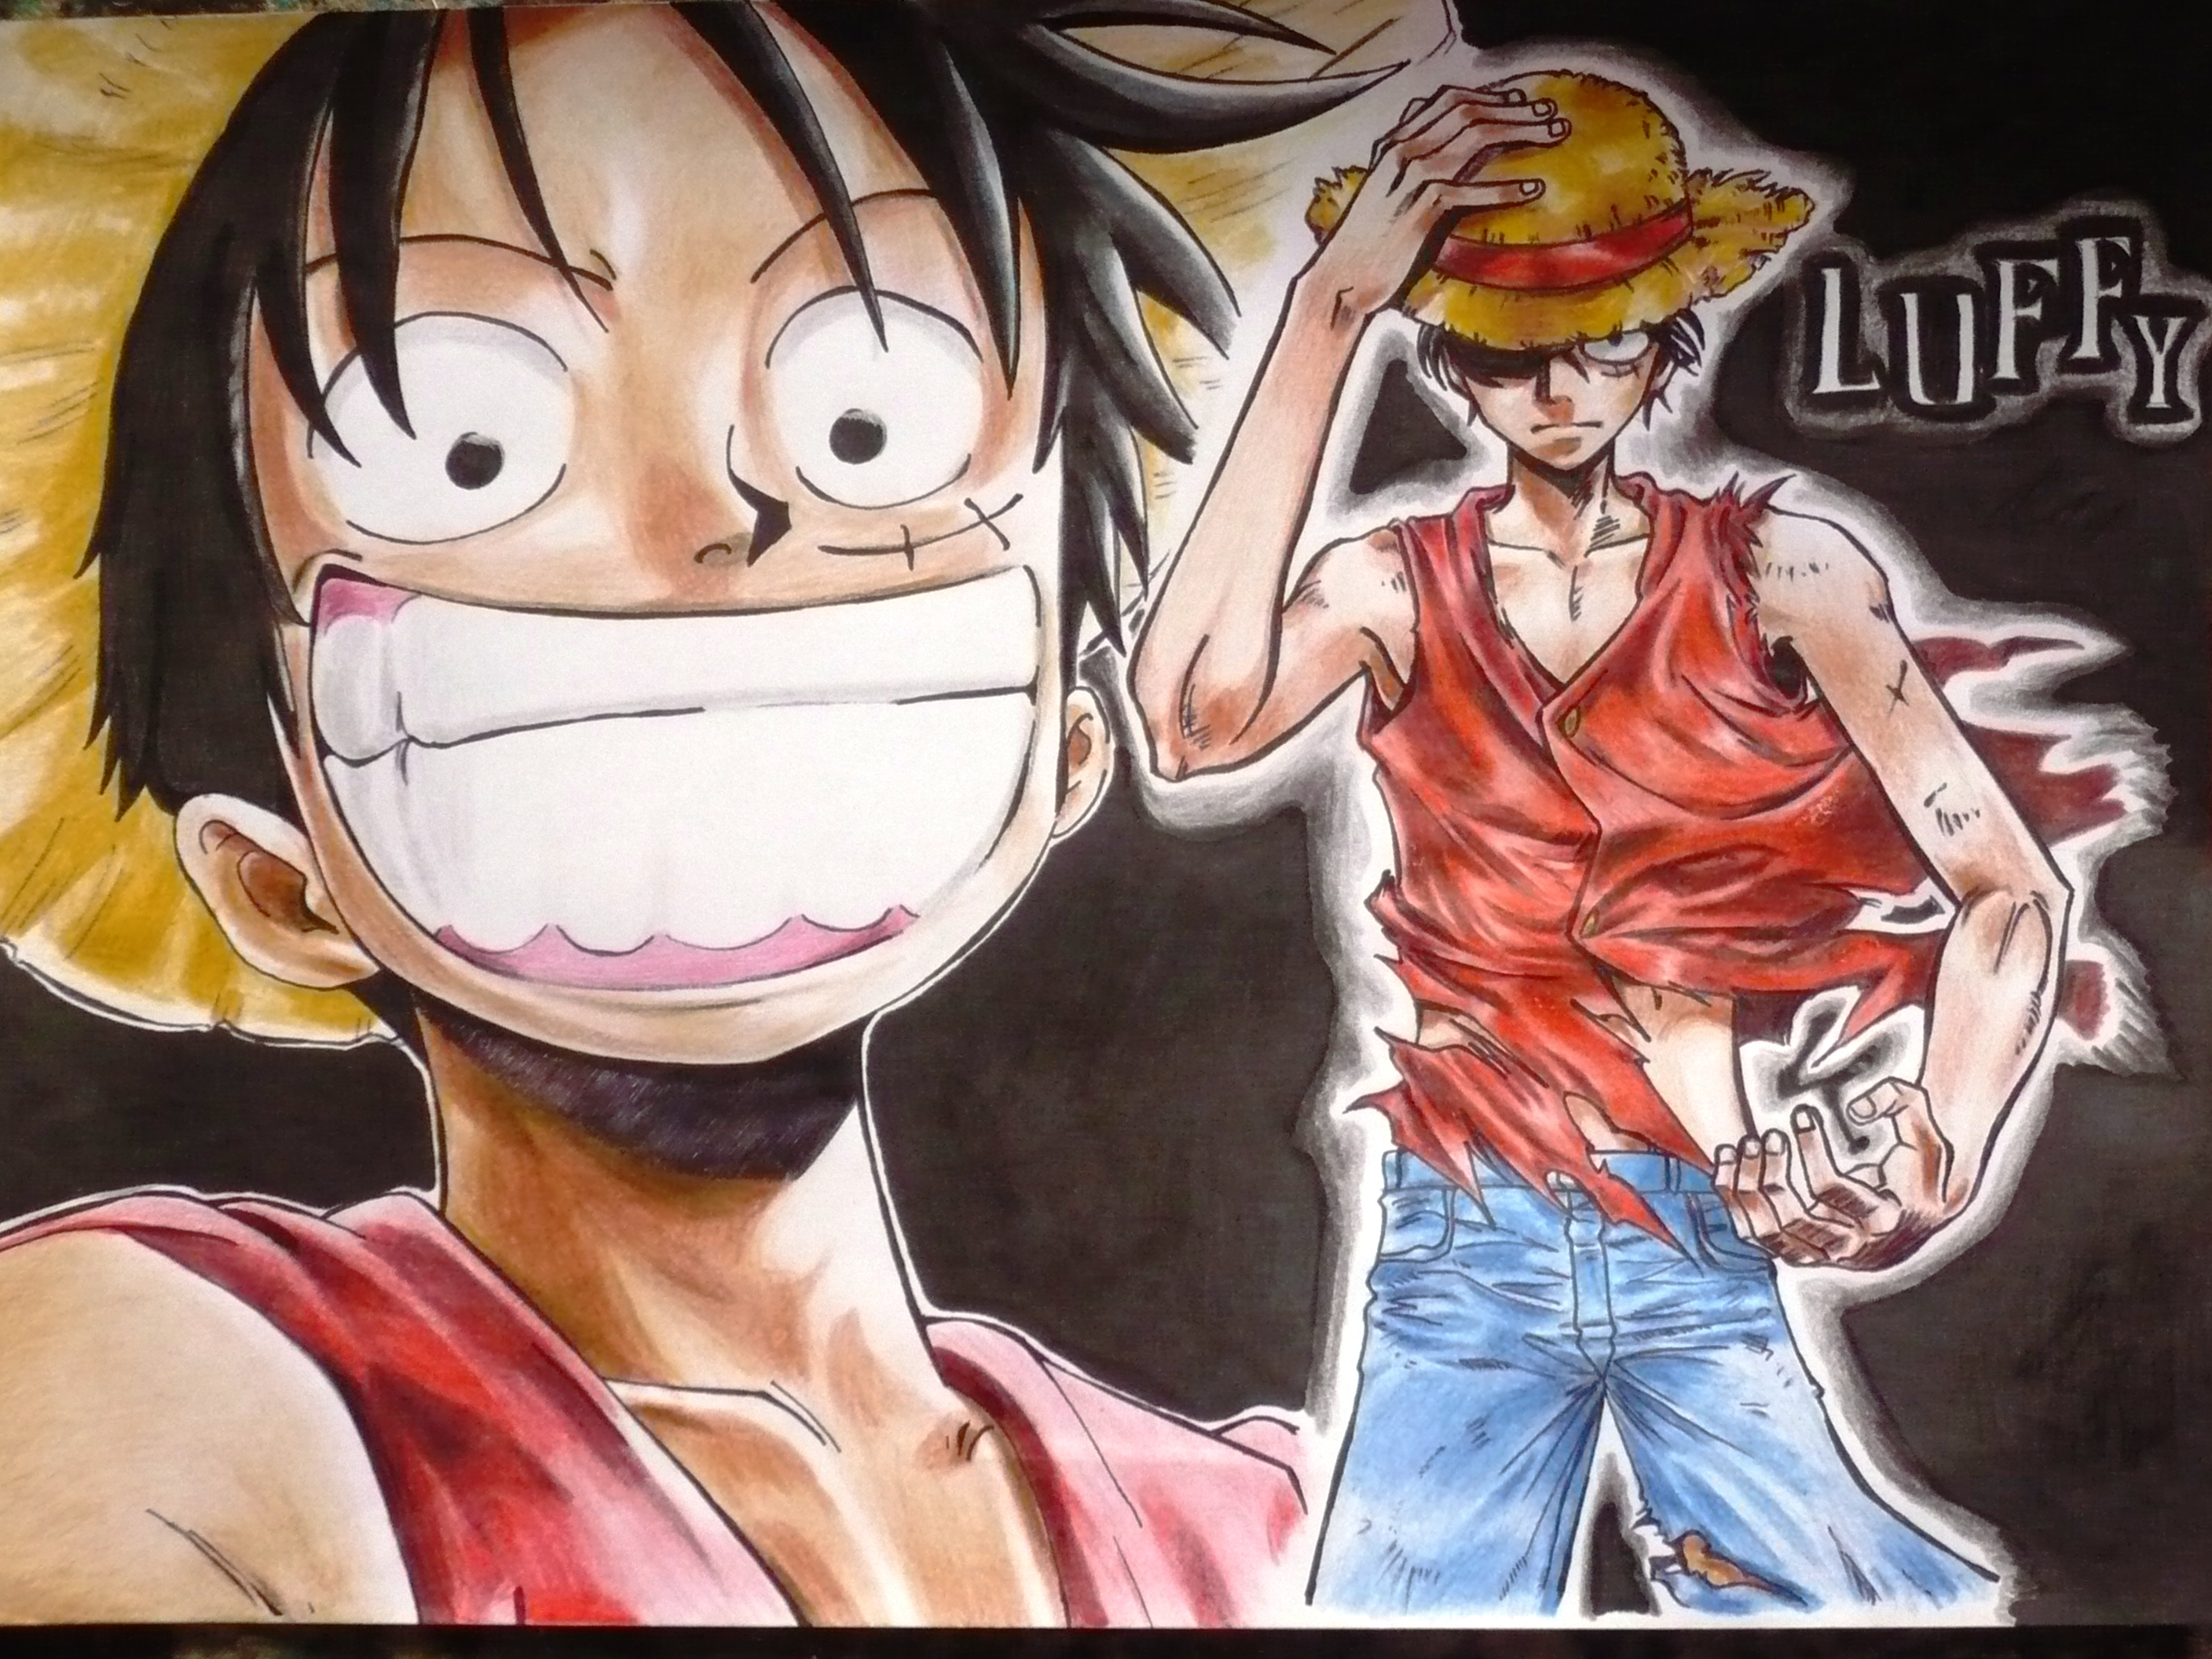 Les fonds d'écran - Page 39 One_Piece__Monkey_D_Luffy_by_Fatee21